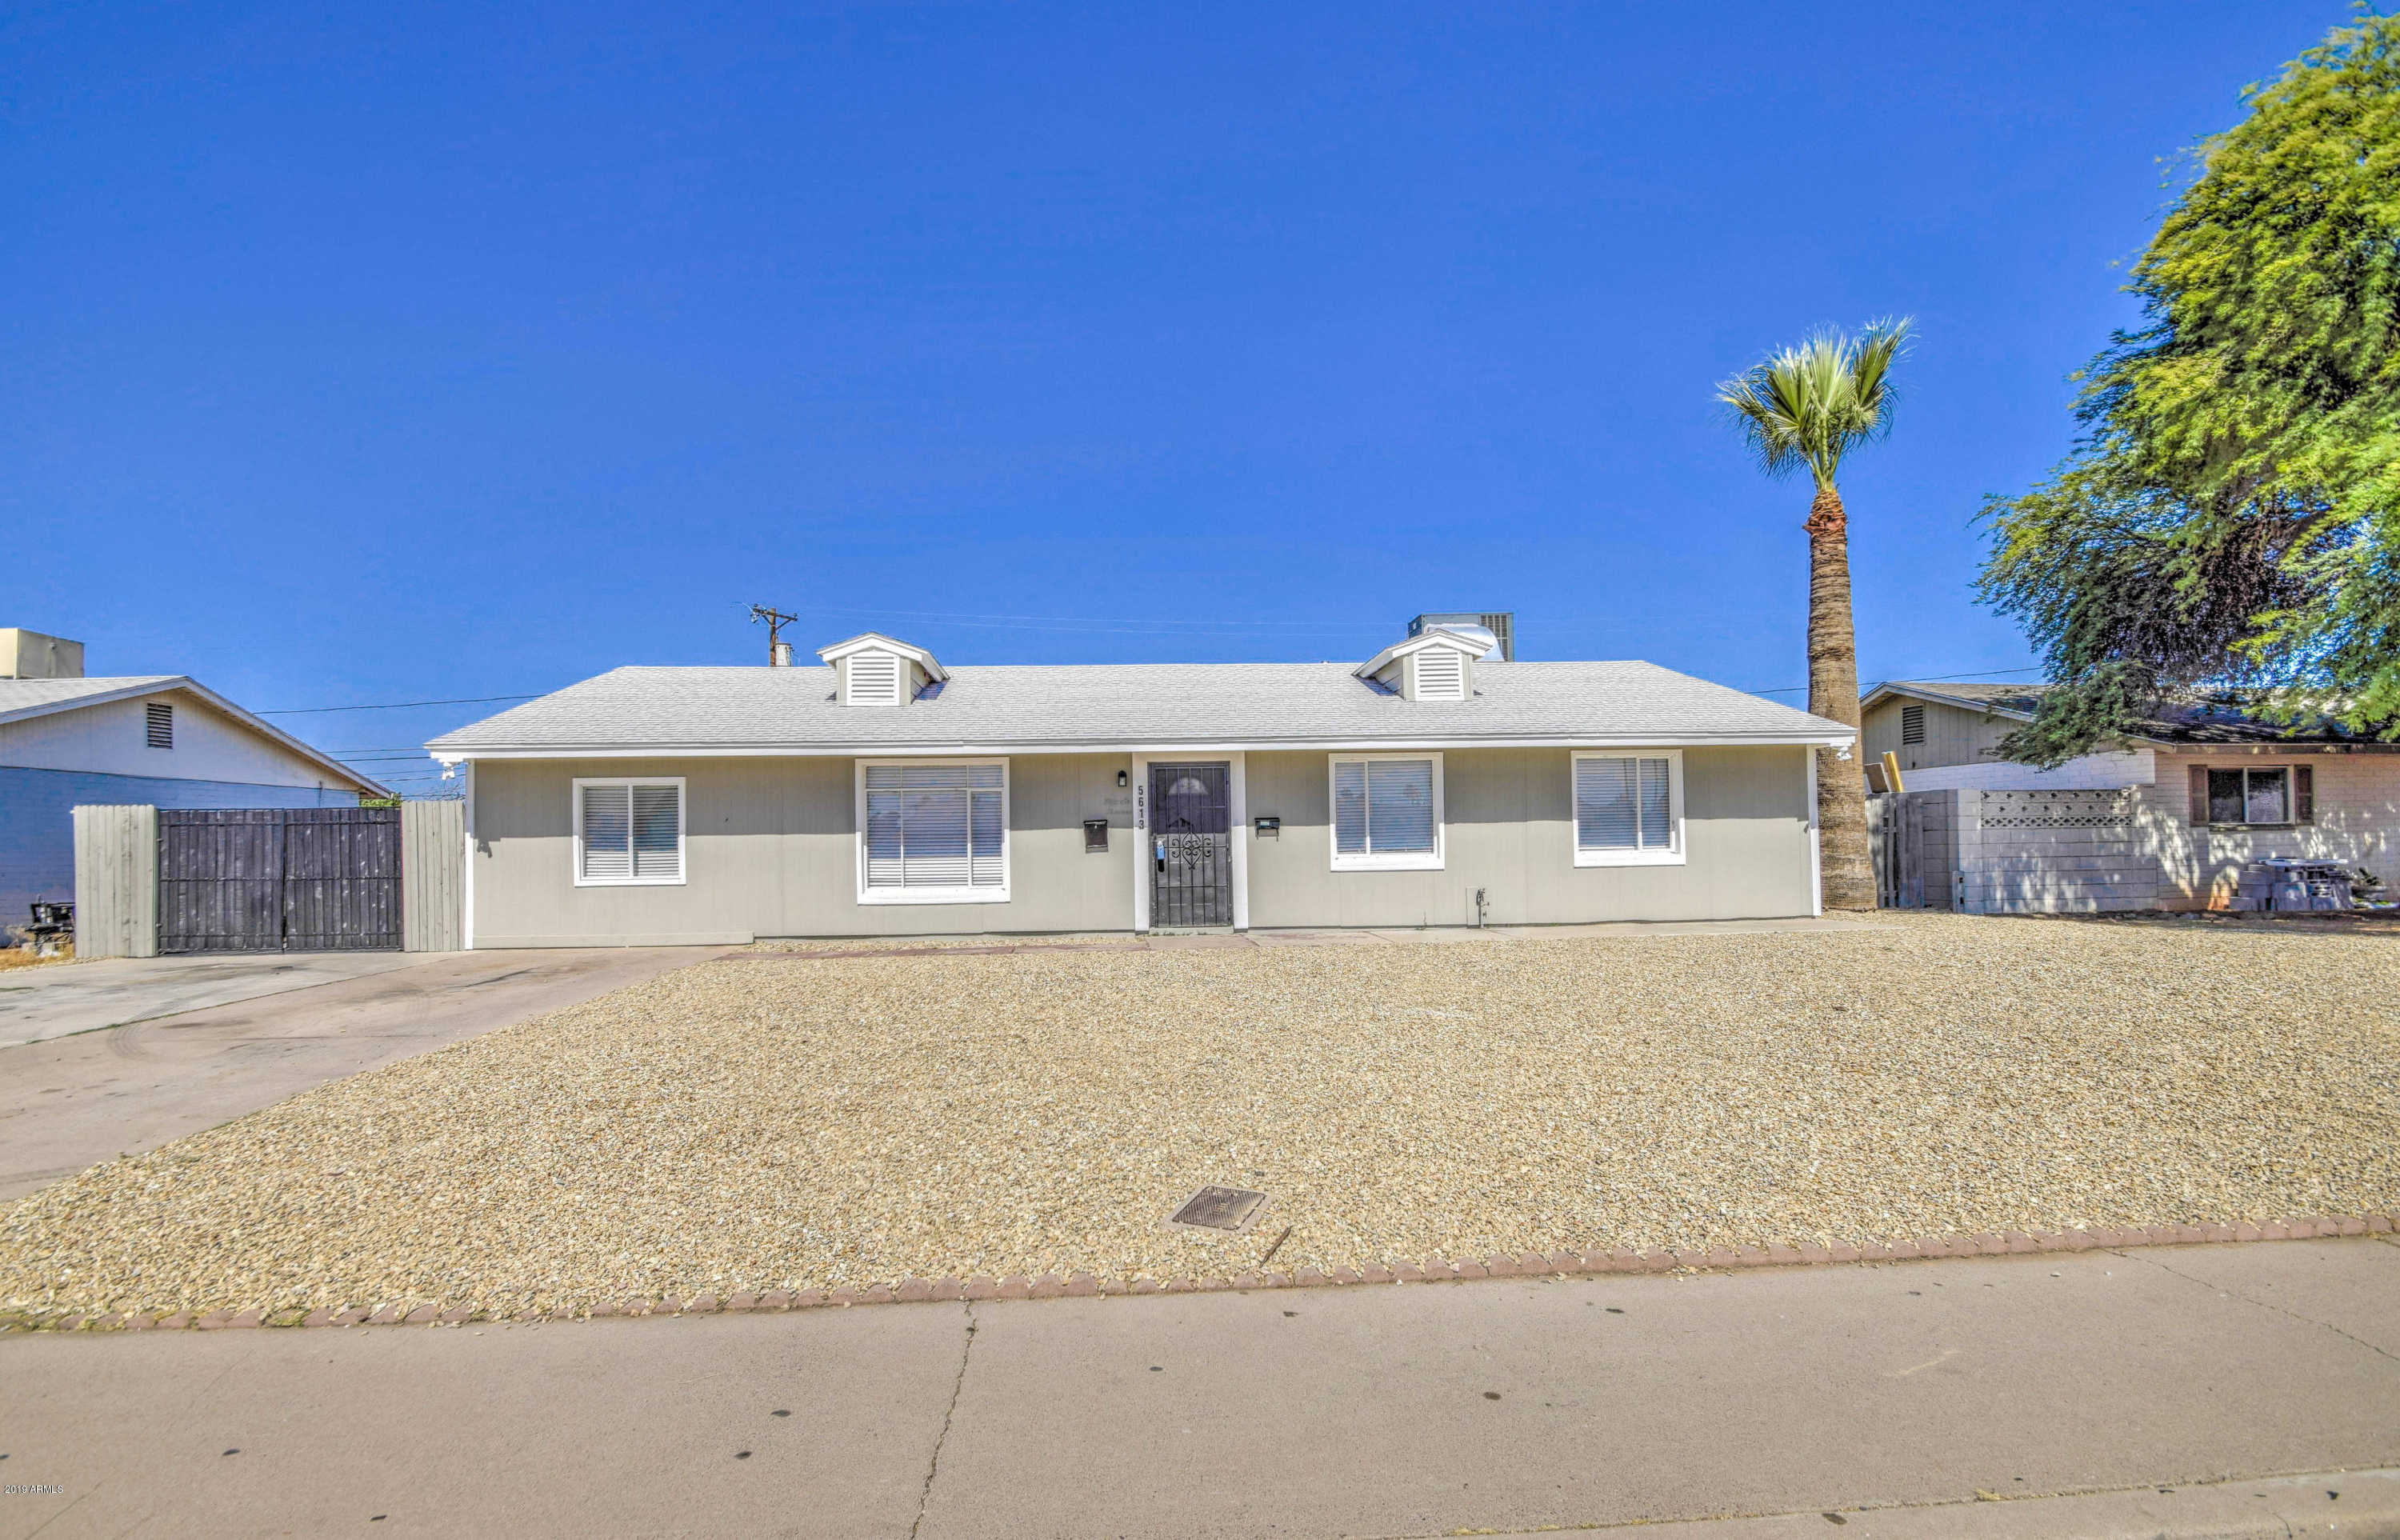 $207,900 - 3Br/2Ba - Home for Sale in Maryvale Terrace 20-a Lts 7490-7494, Glendale